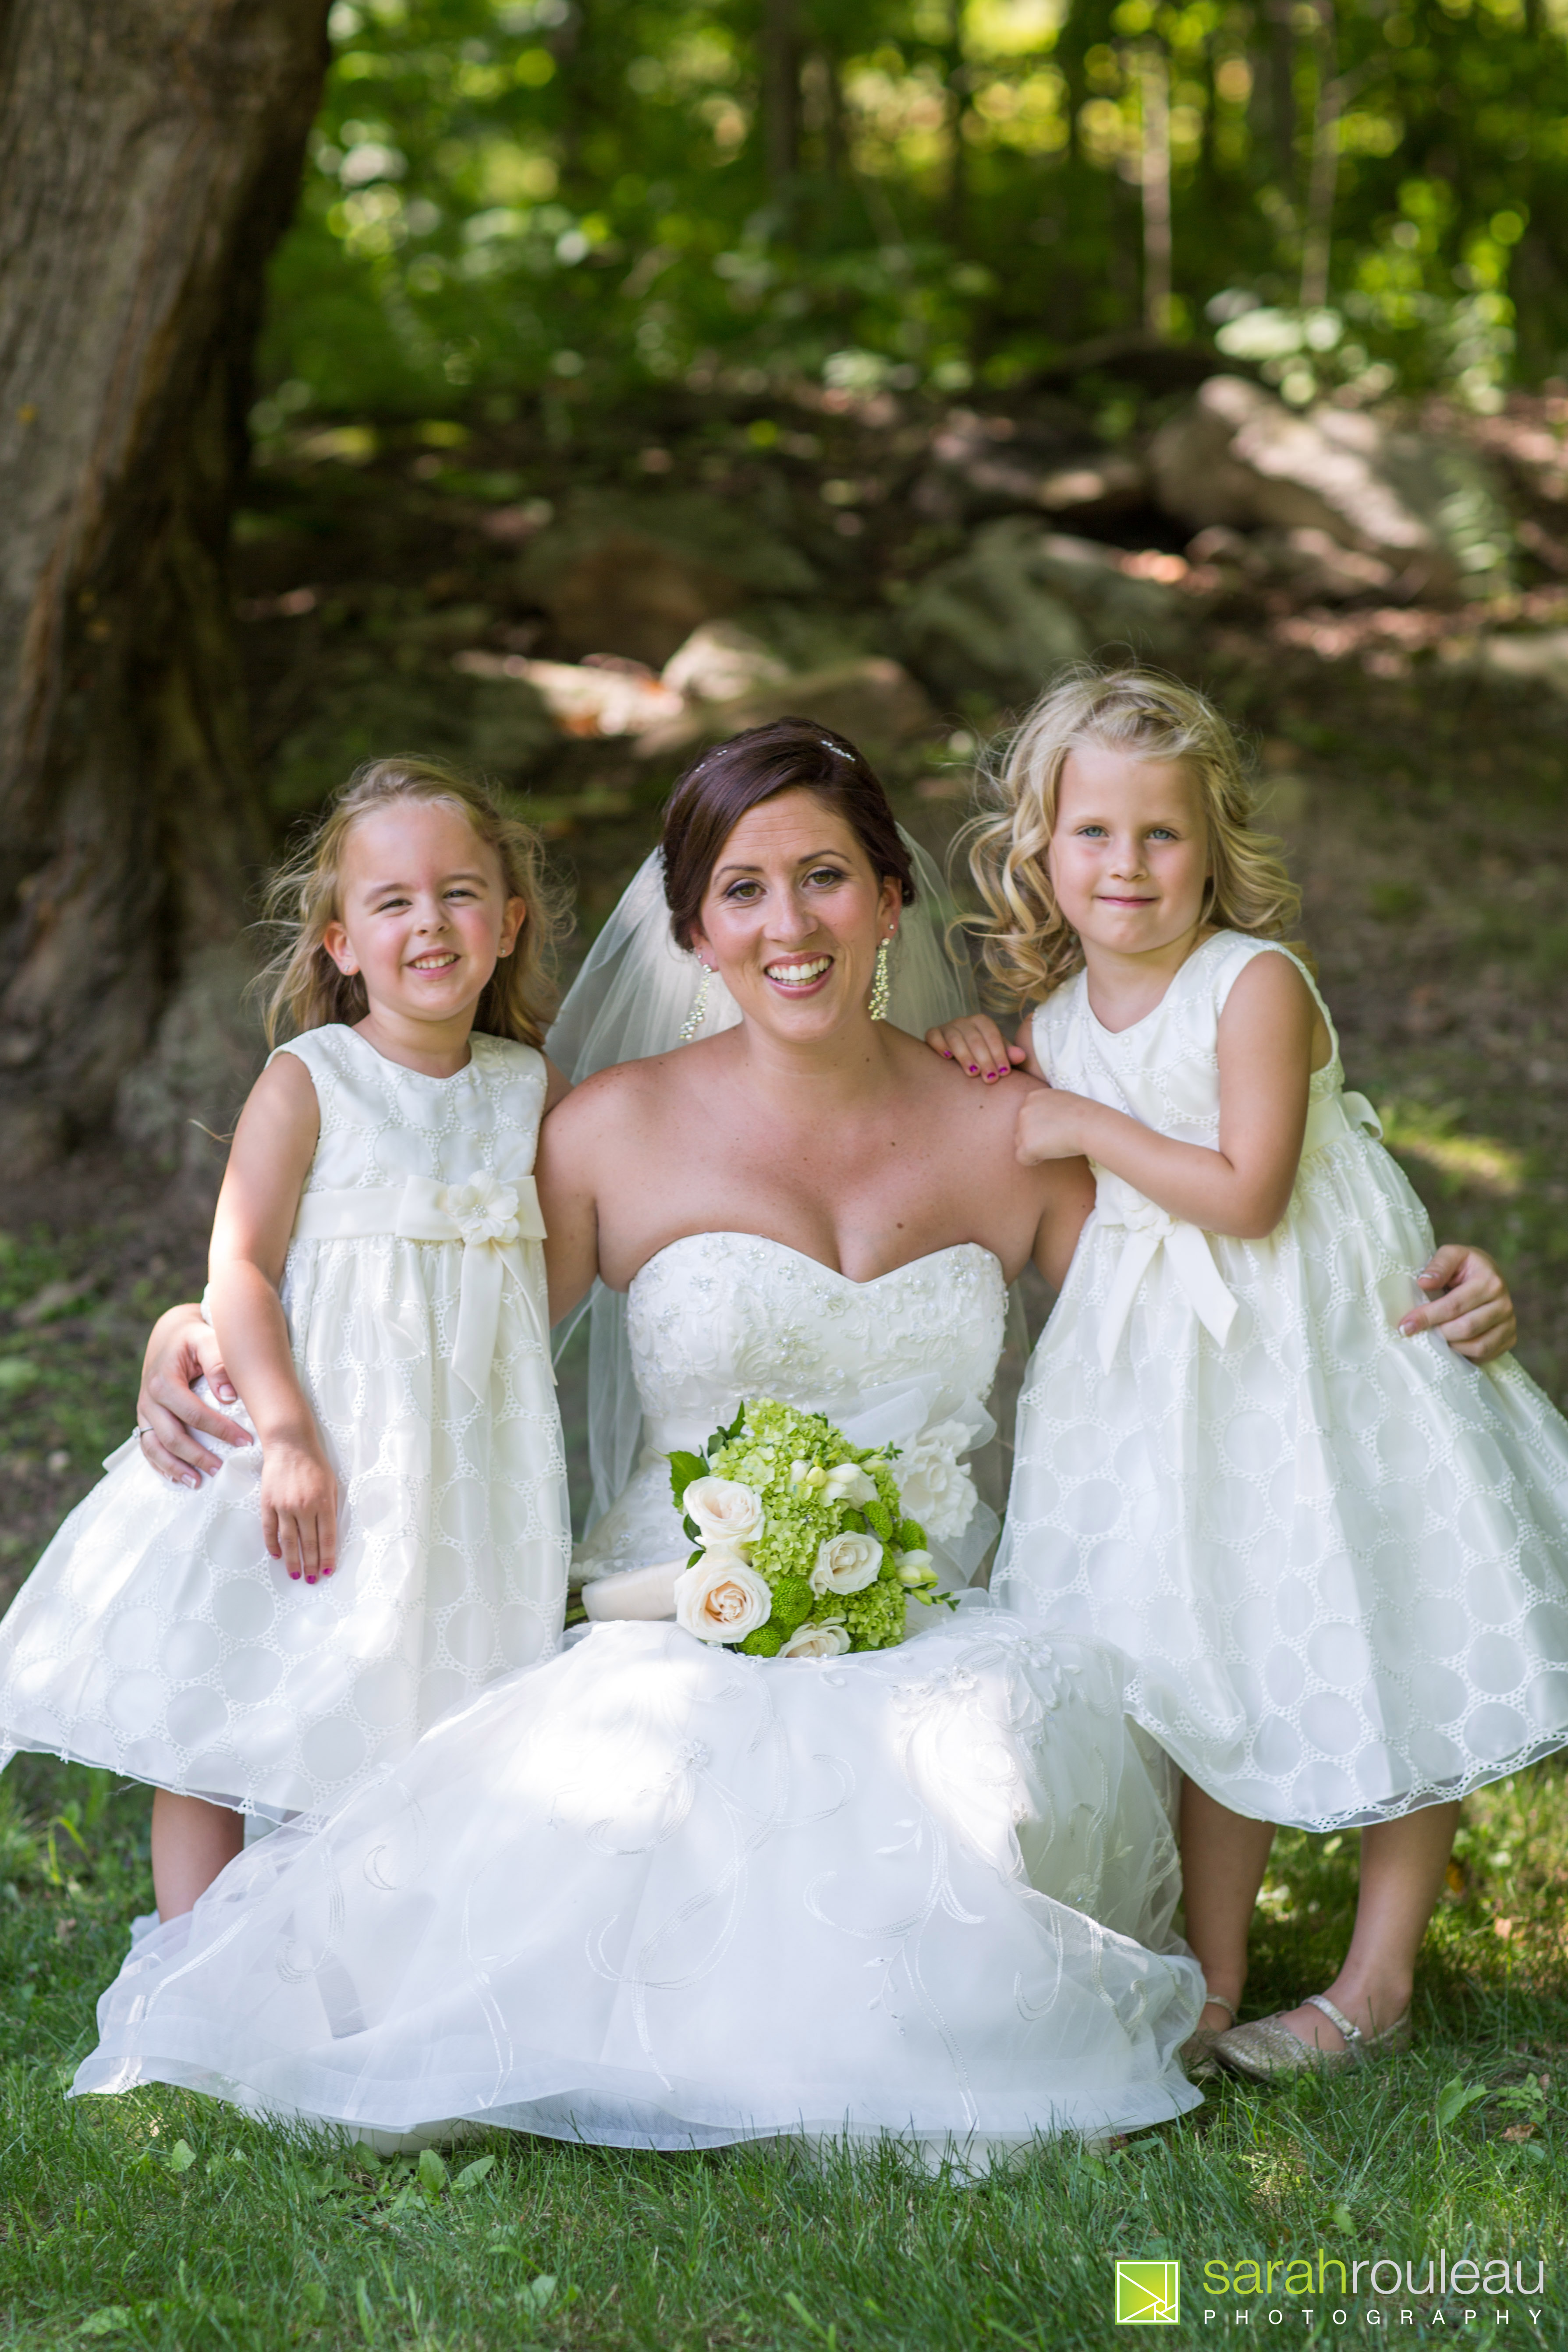 Kingston wedding and family photographer sarah rouleau photography